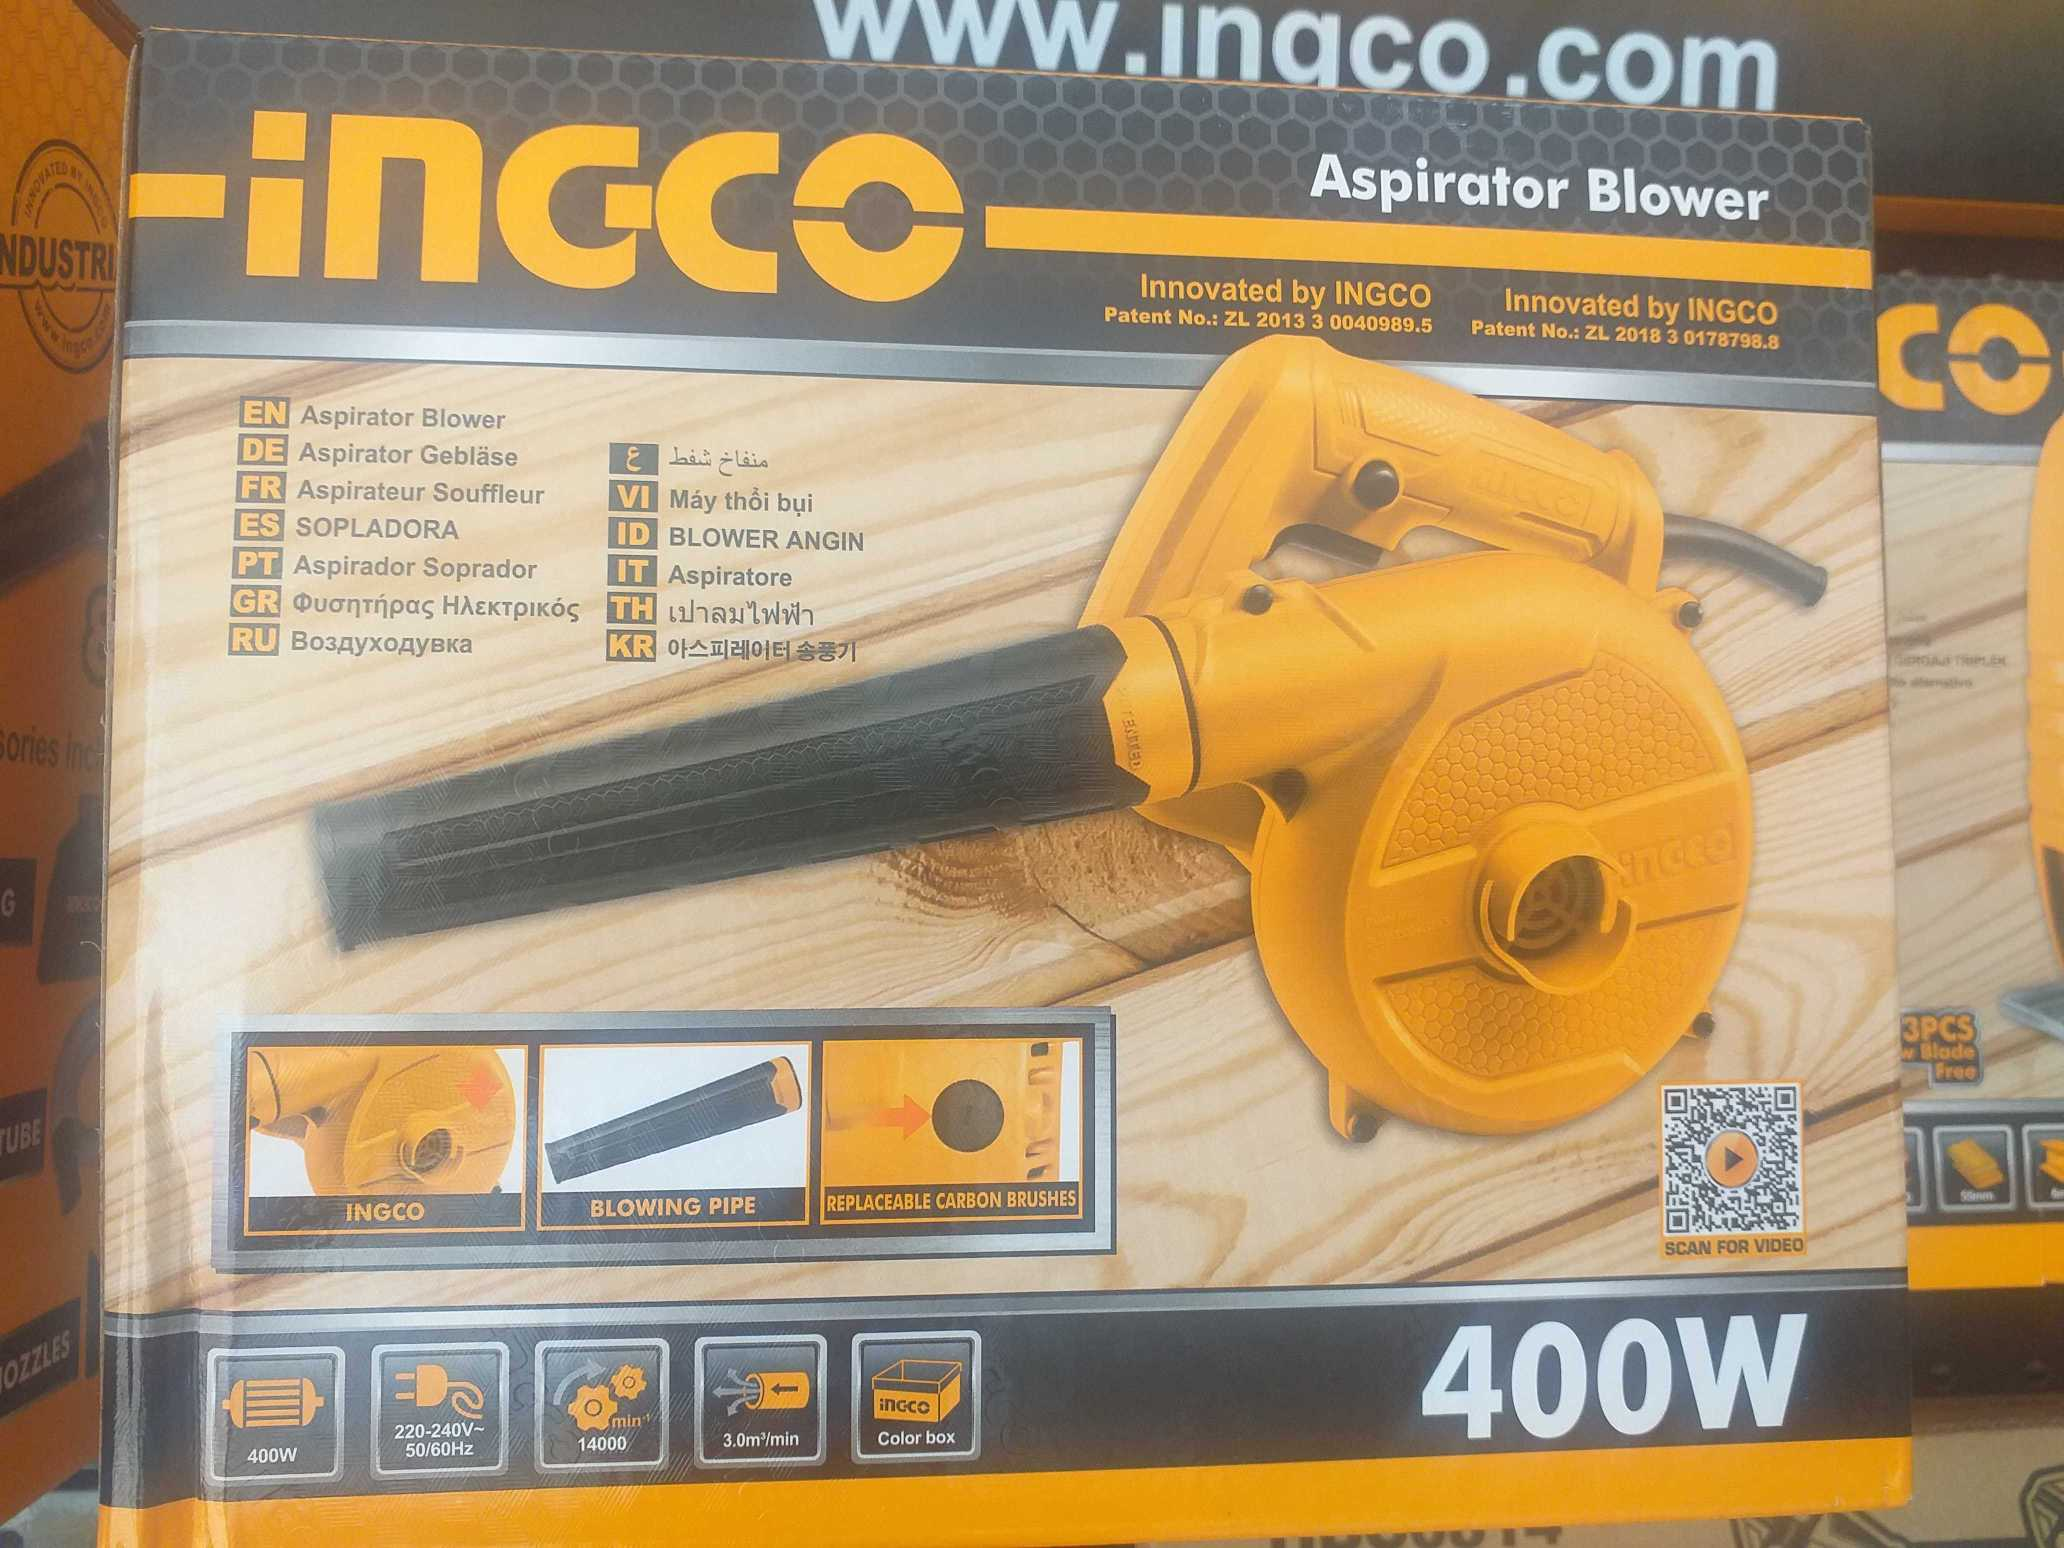 Ingco Aspirator Blower Air Blower 400w